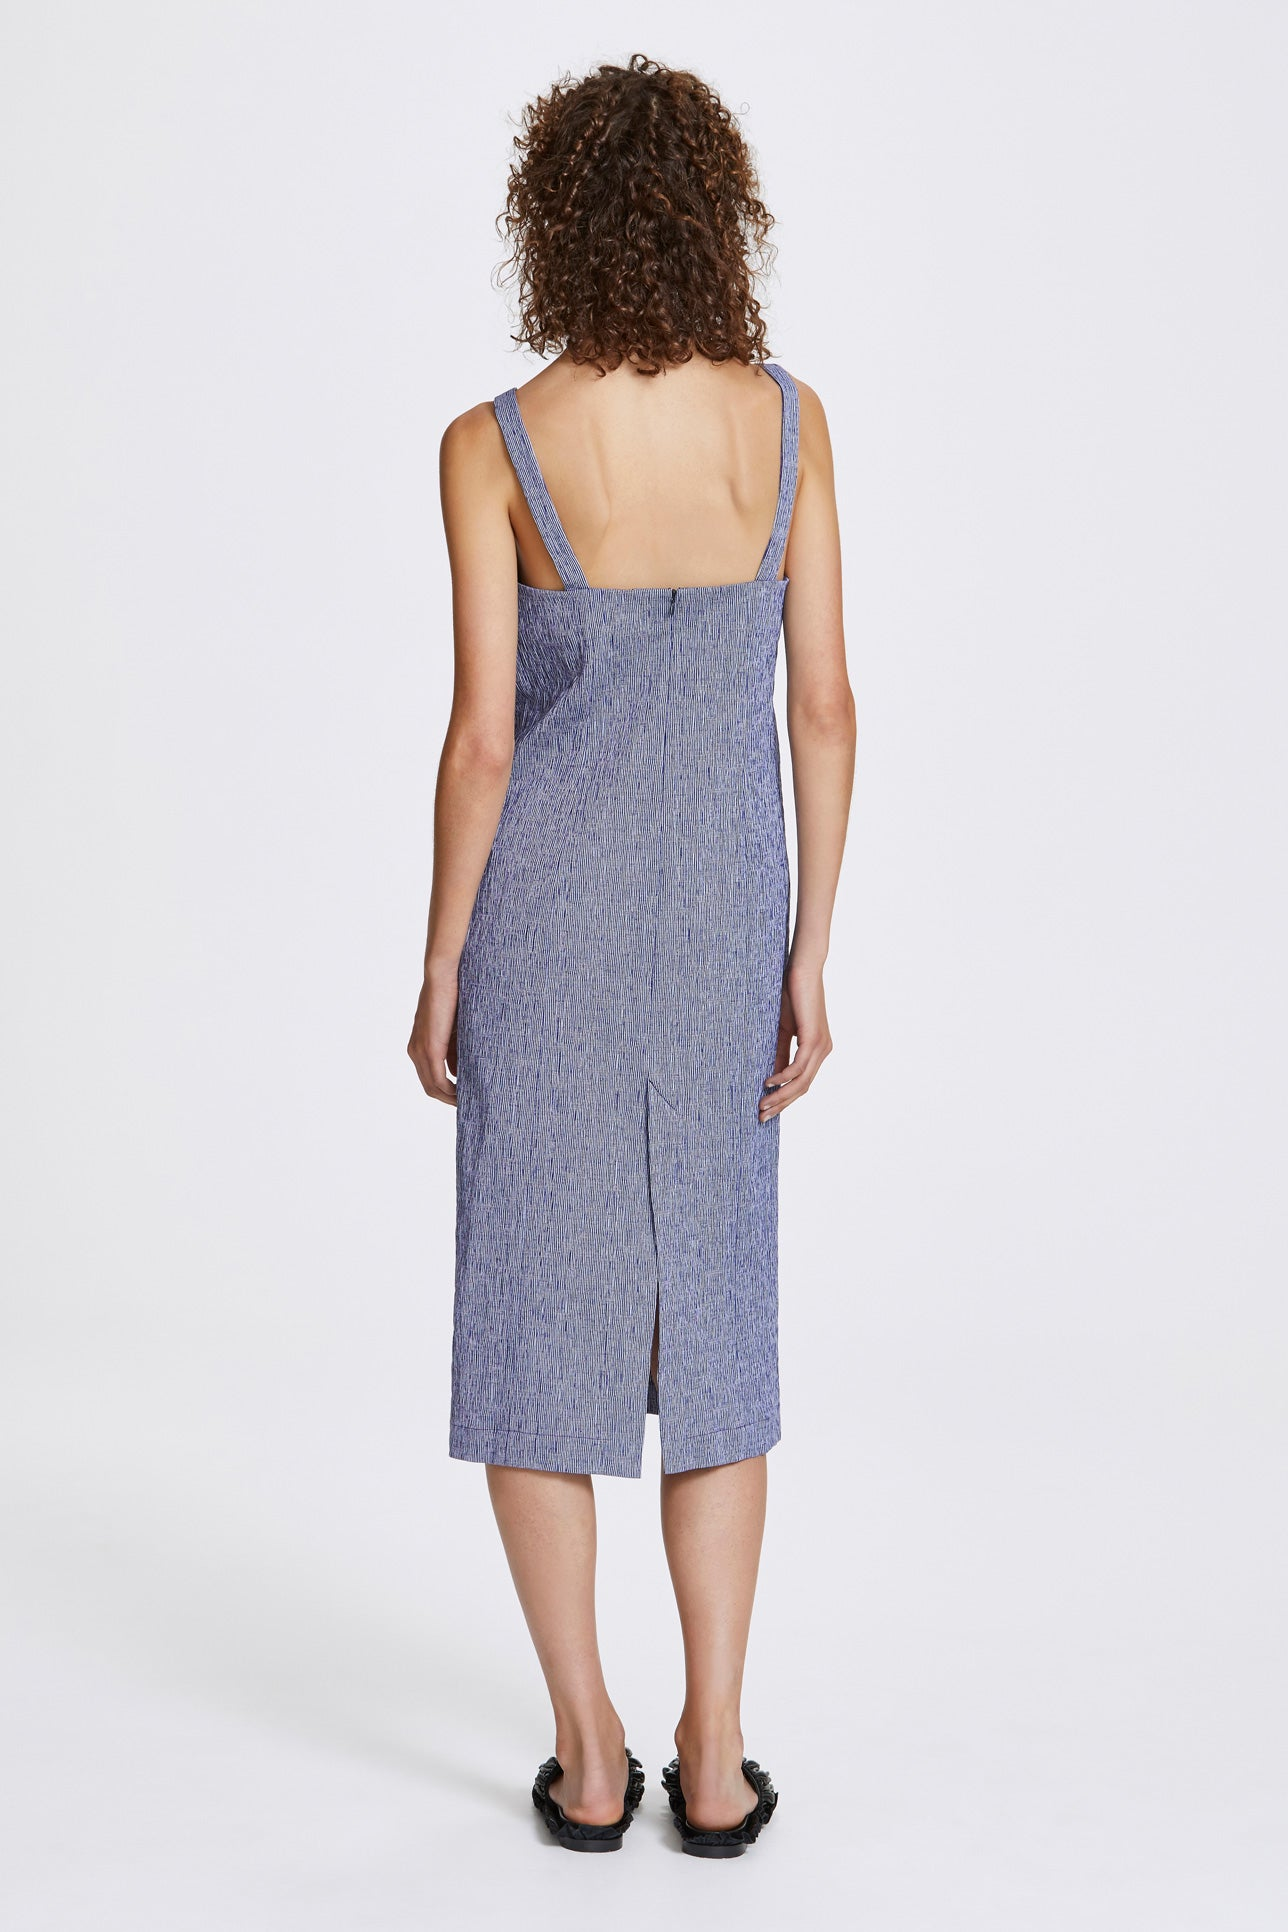 Double vent slip dress - Textured cotton stripe - Blue and white - Resortwear dress - Her Line